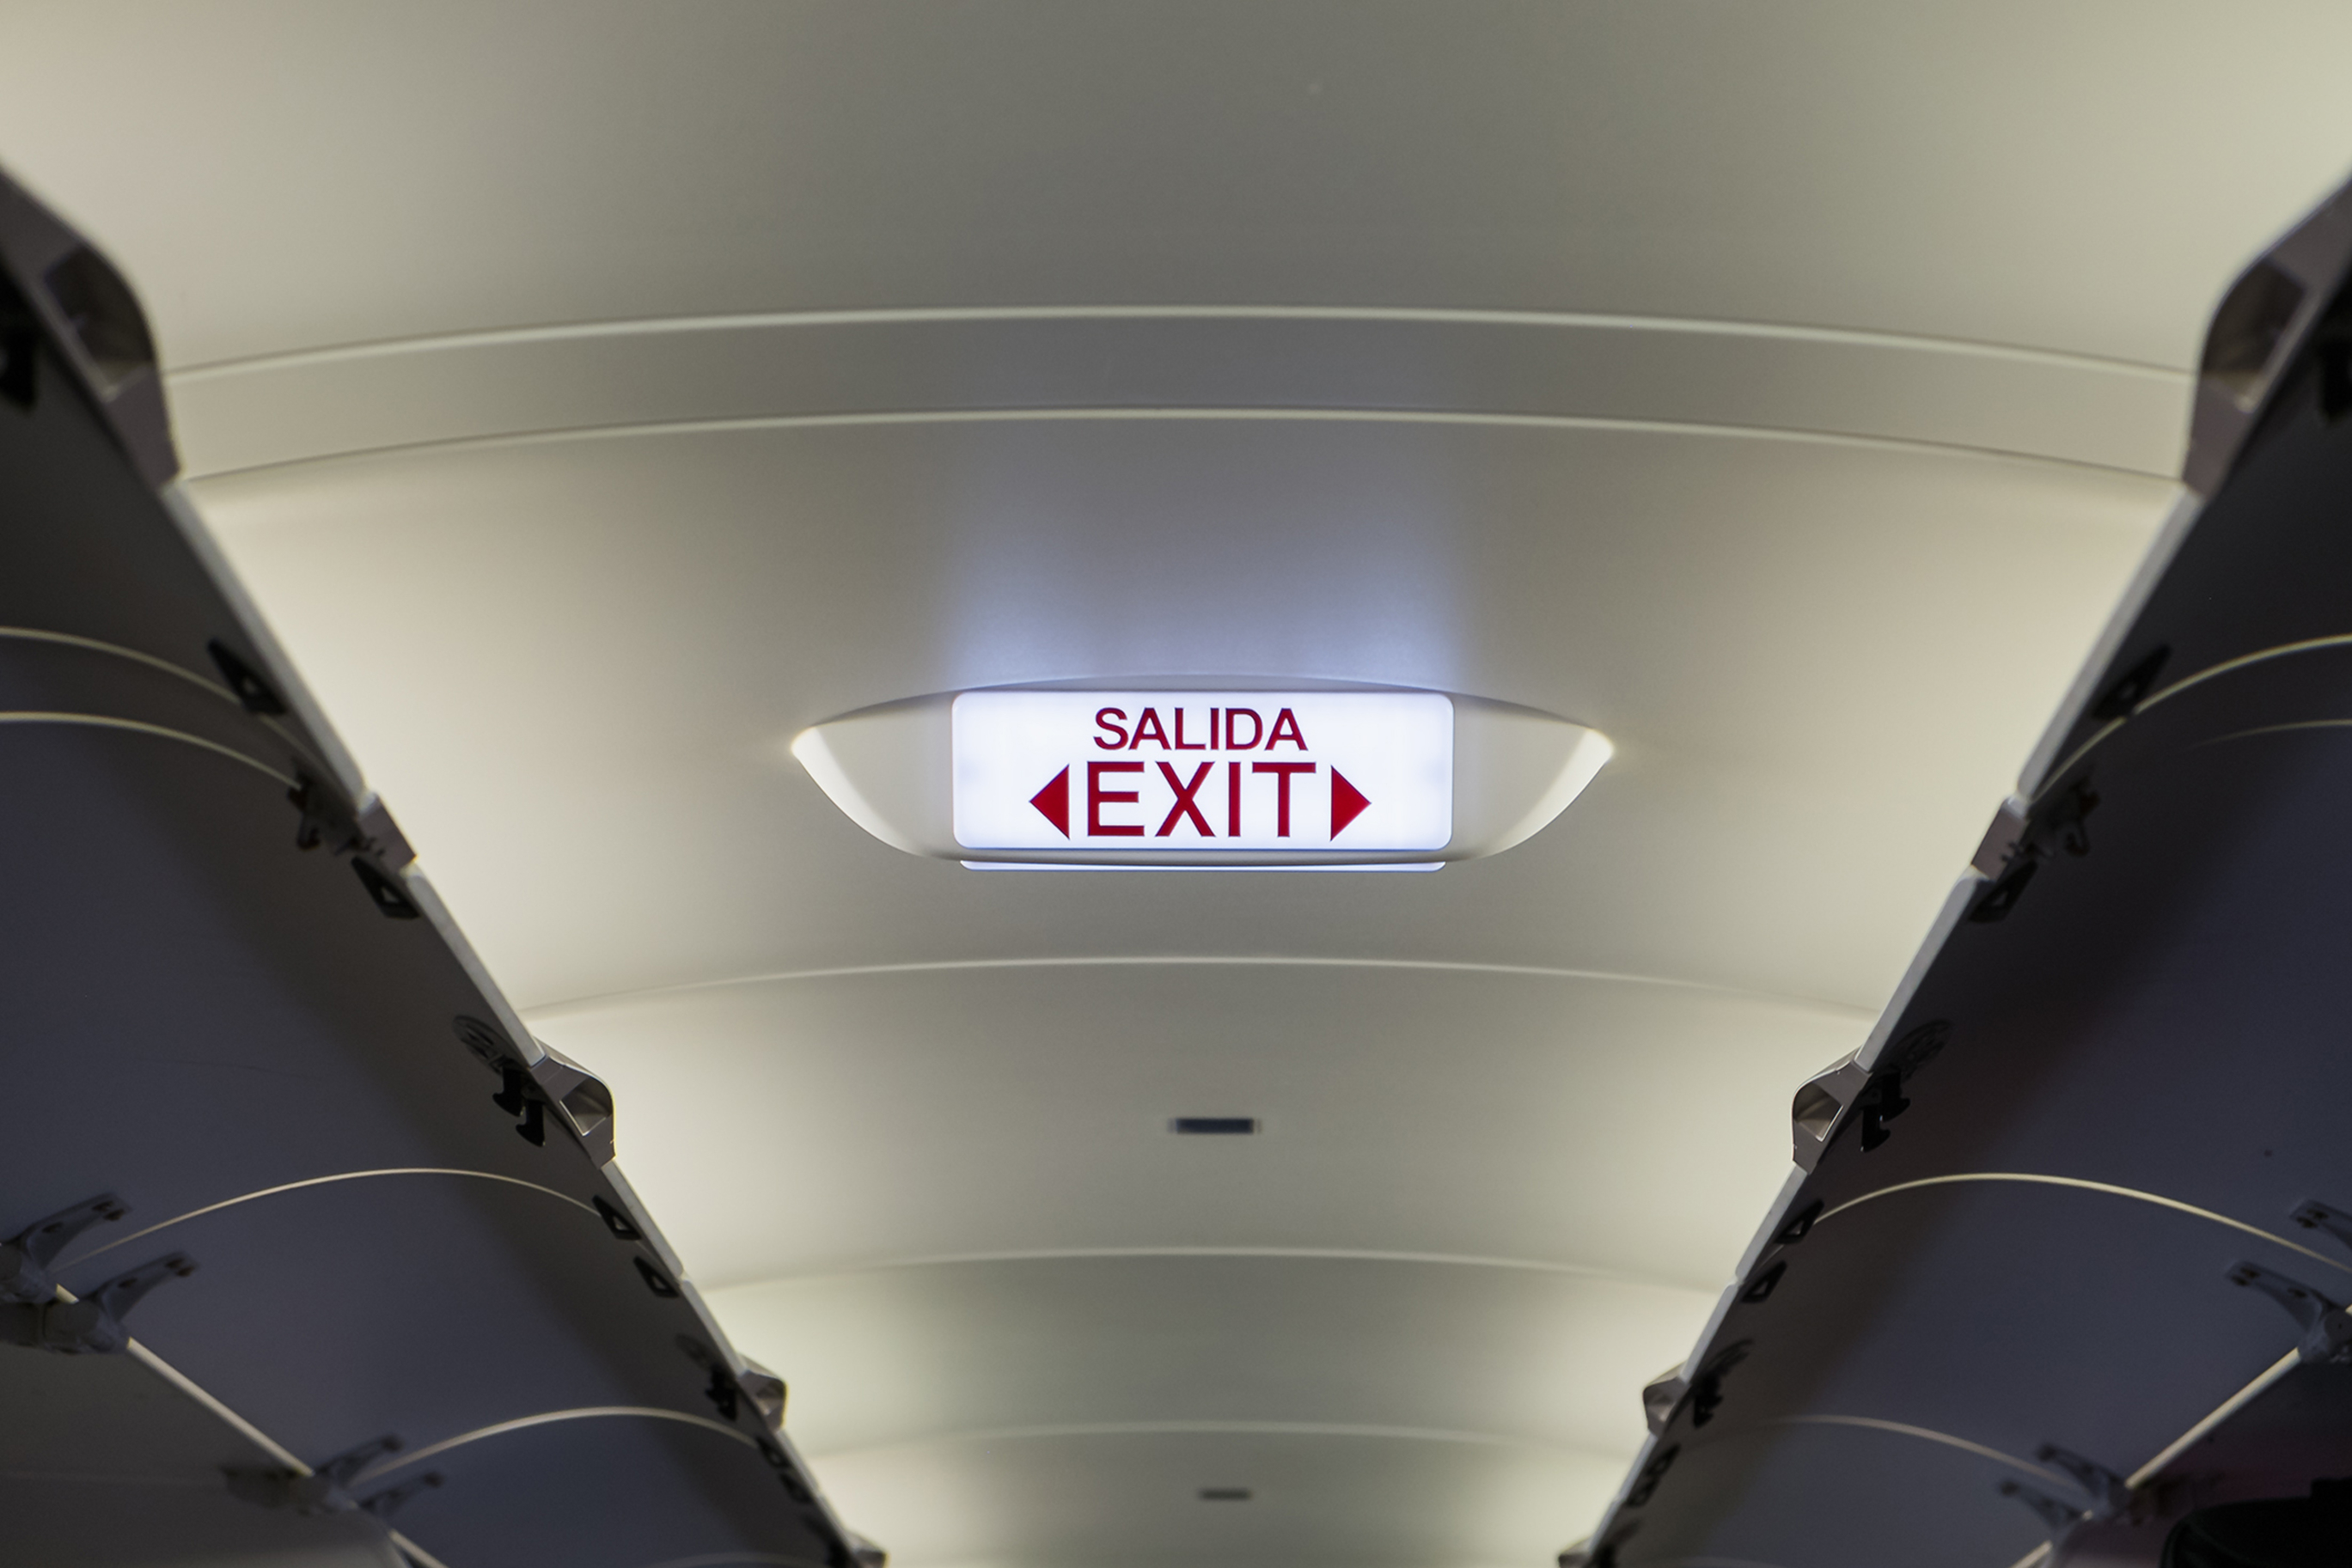 airplane-exit-sign.jpg?mtime=20180710131934#asset:102452